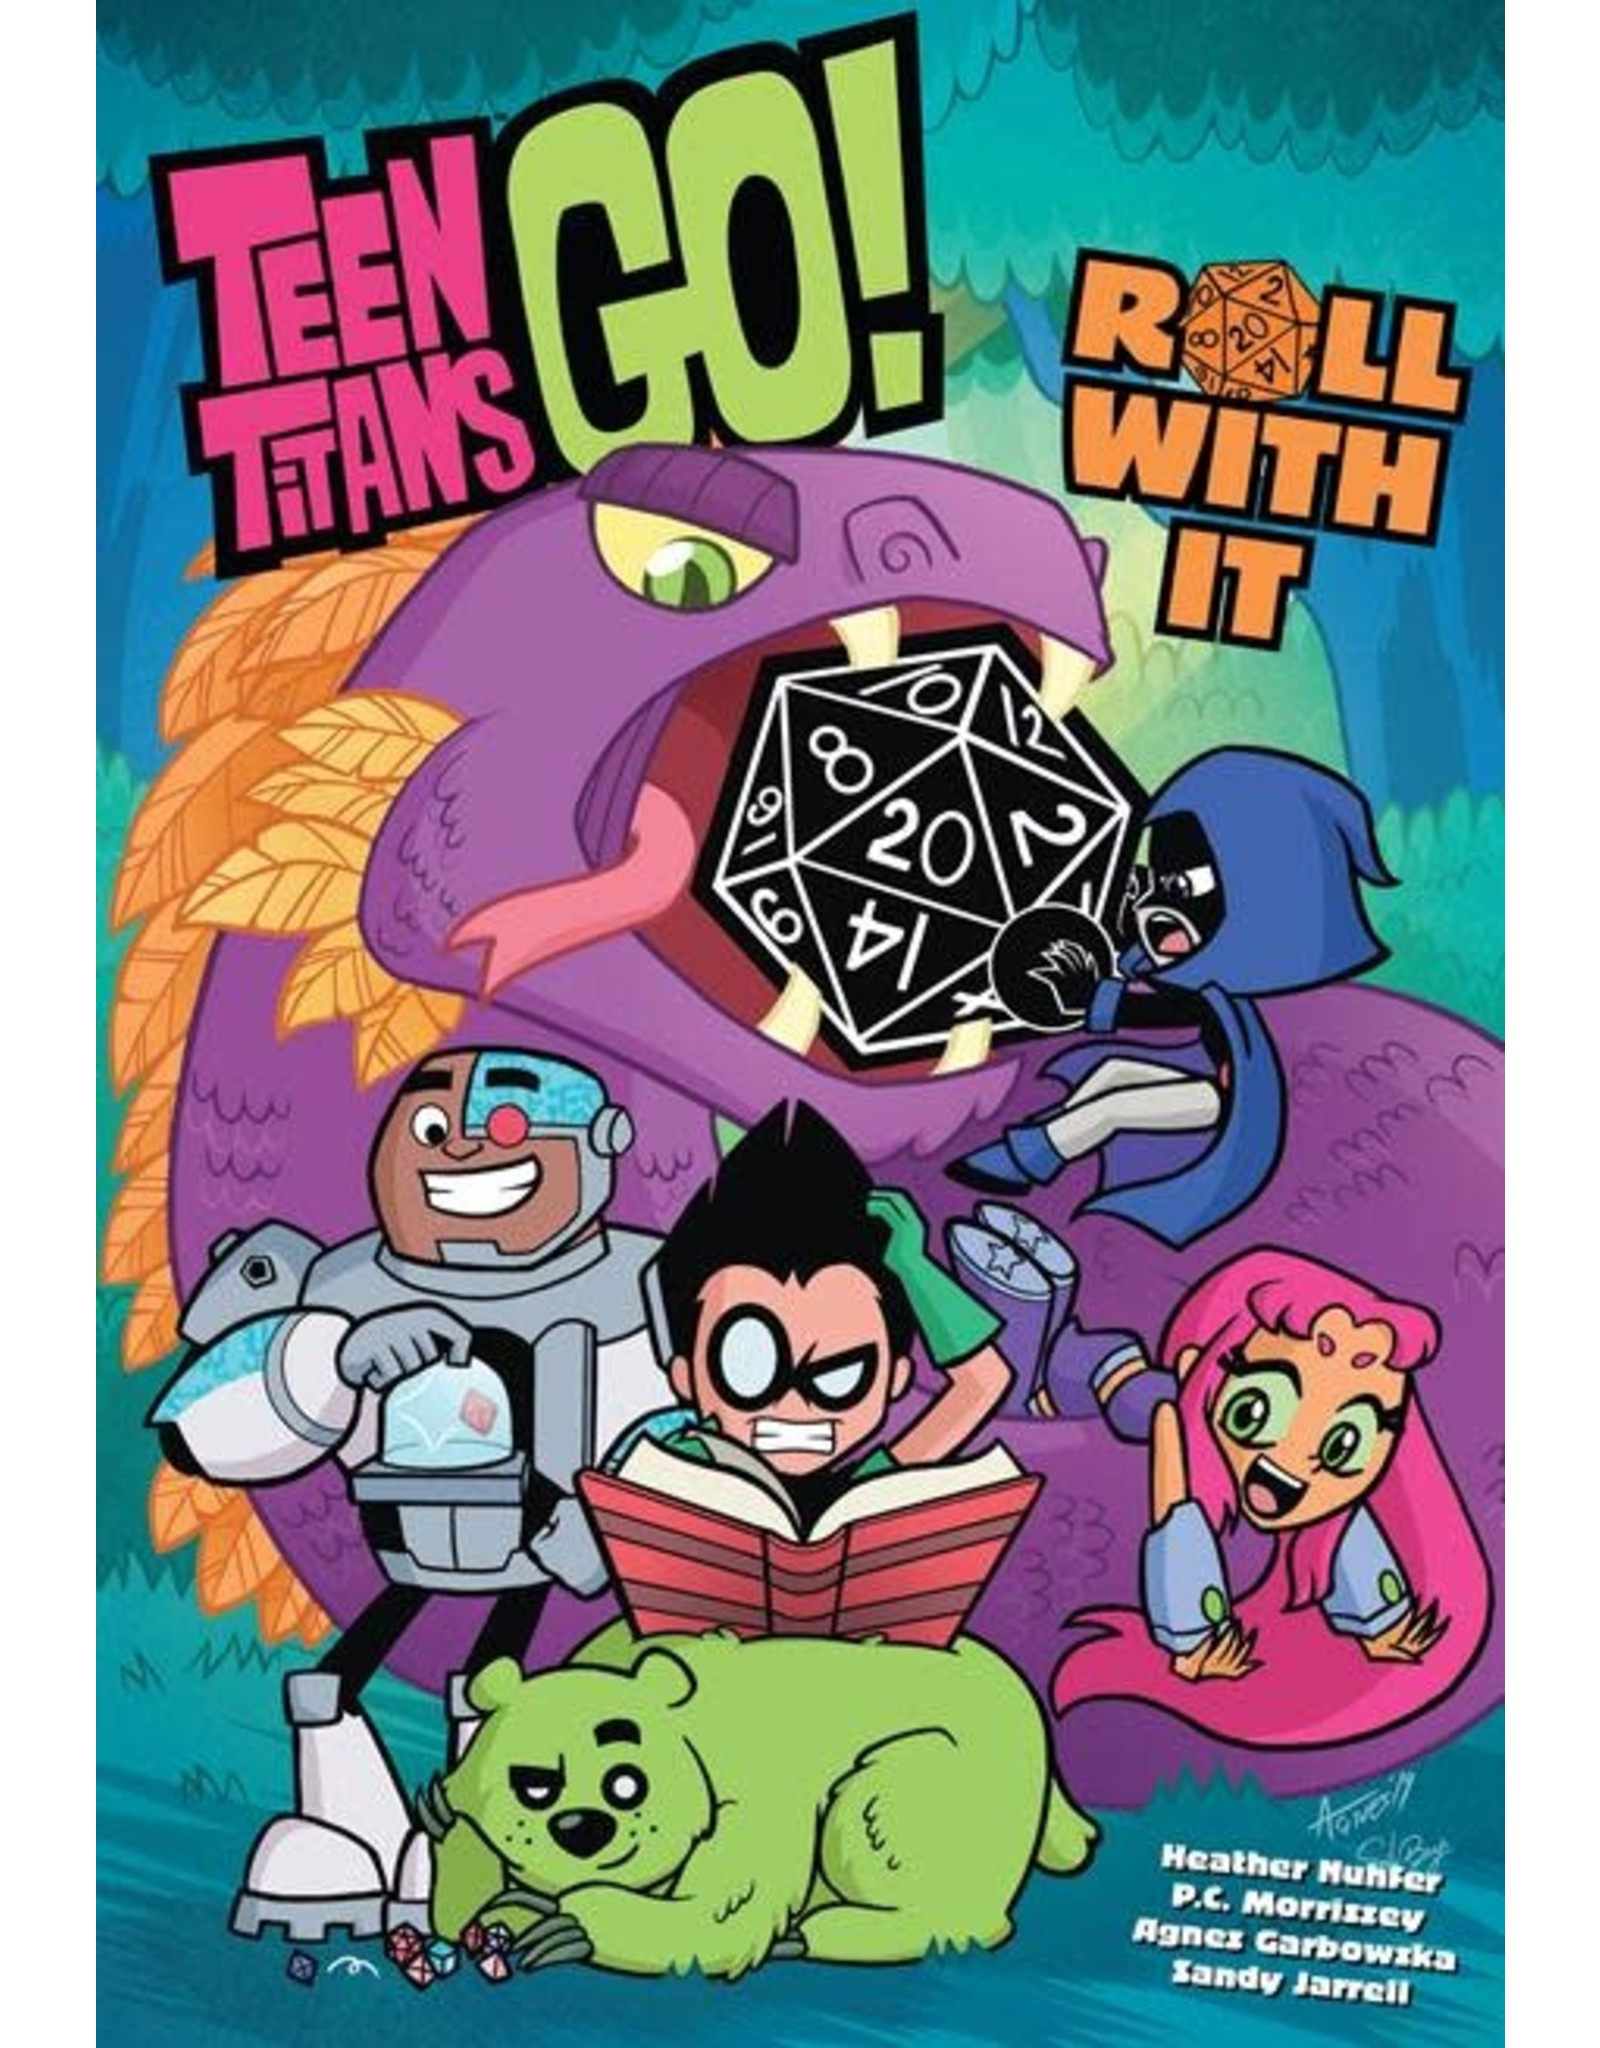 DC Comics TEEN TITANS GO ROLL WITH IT